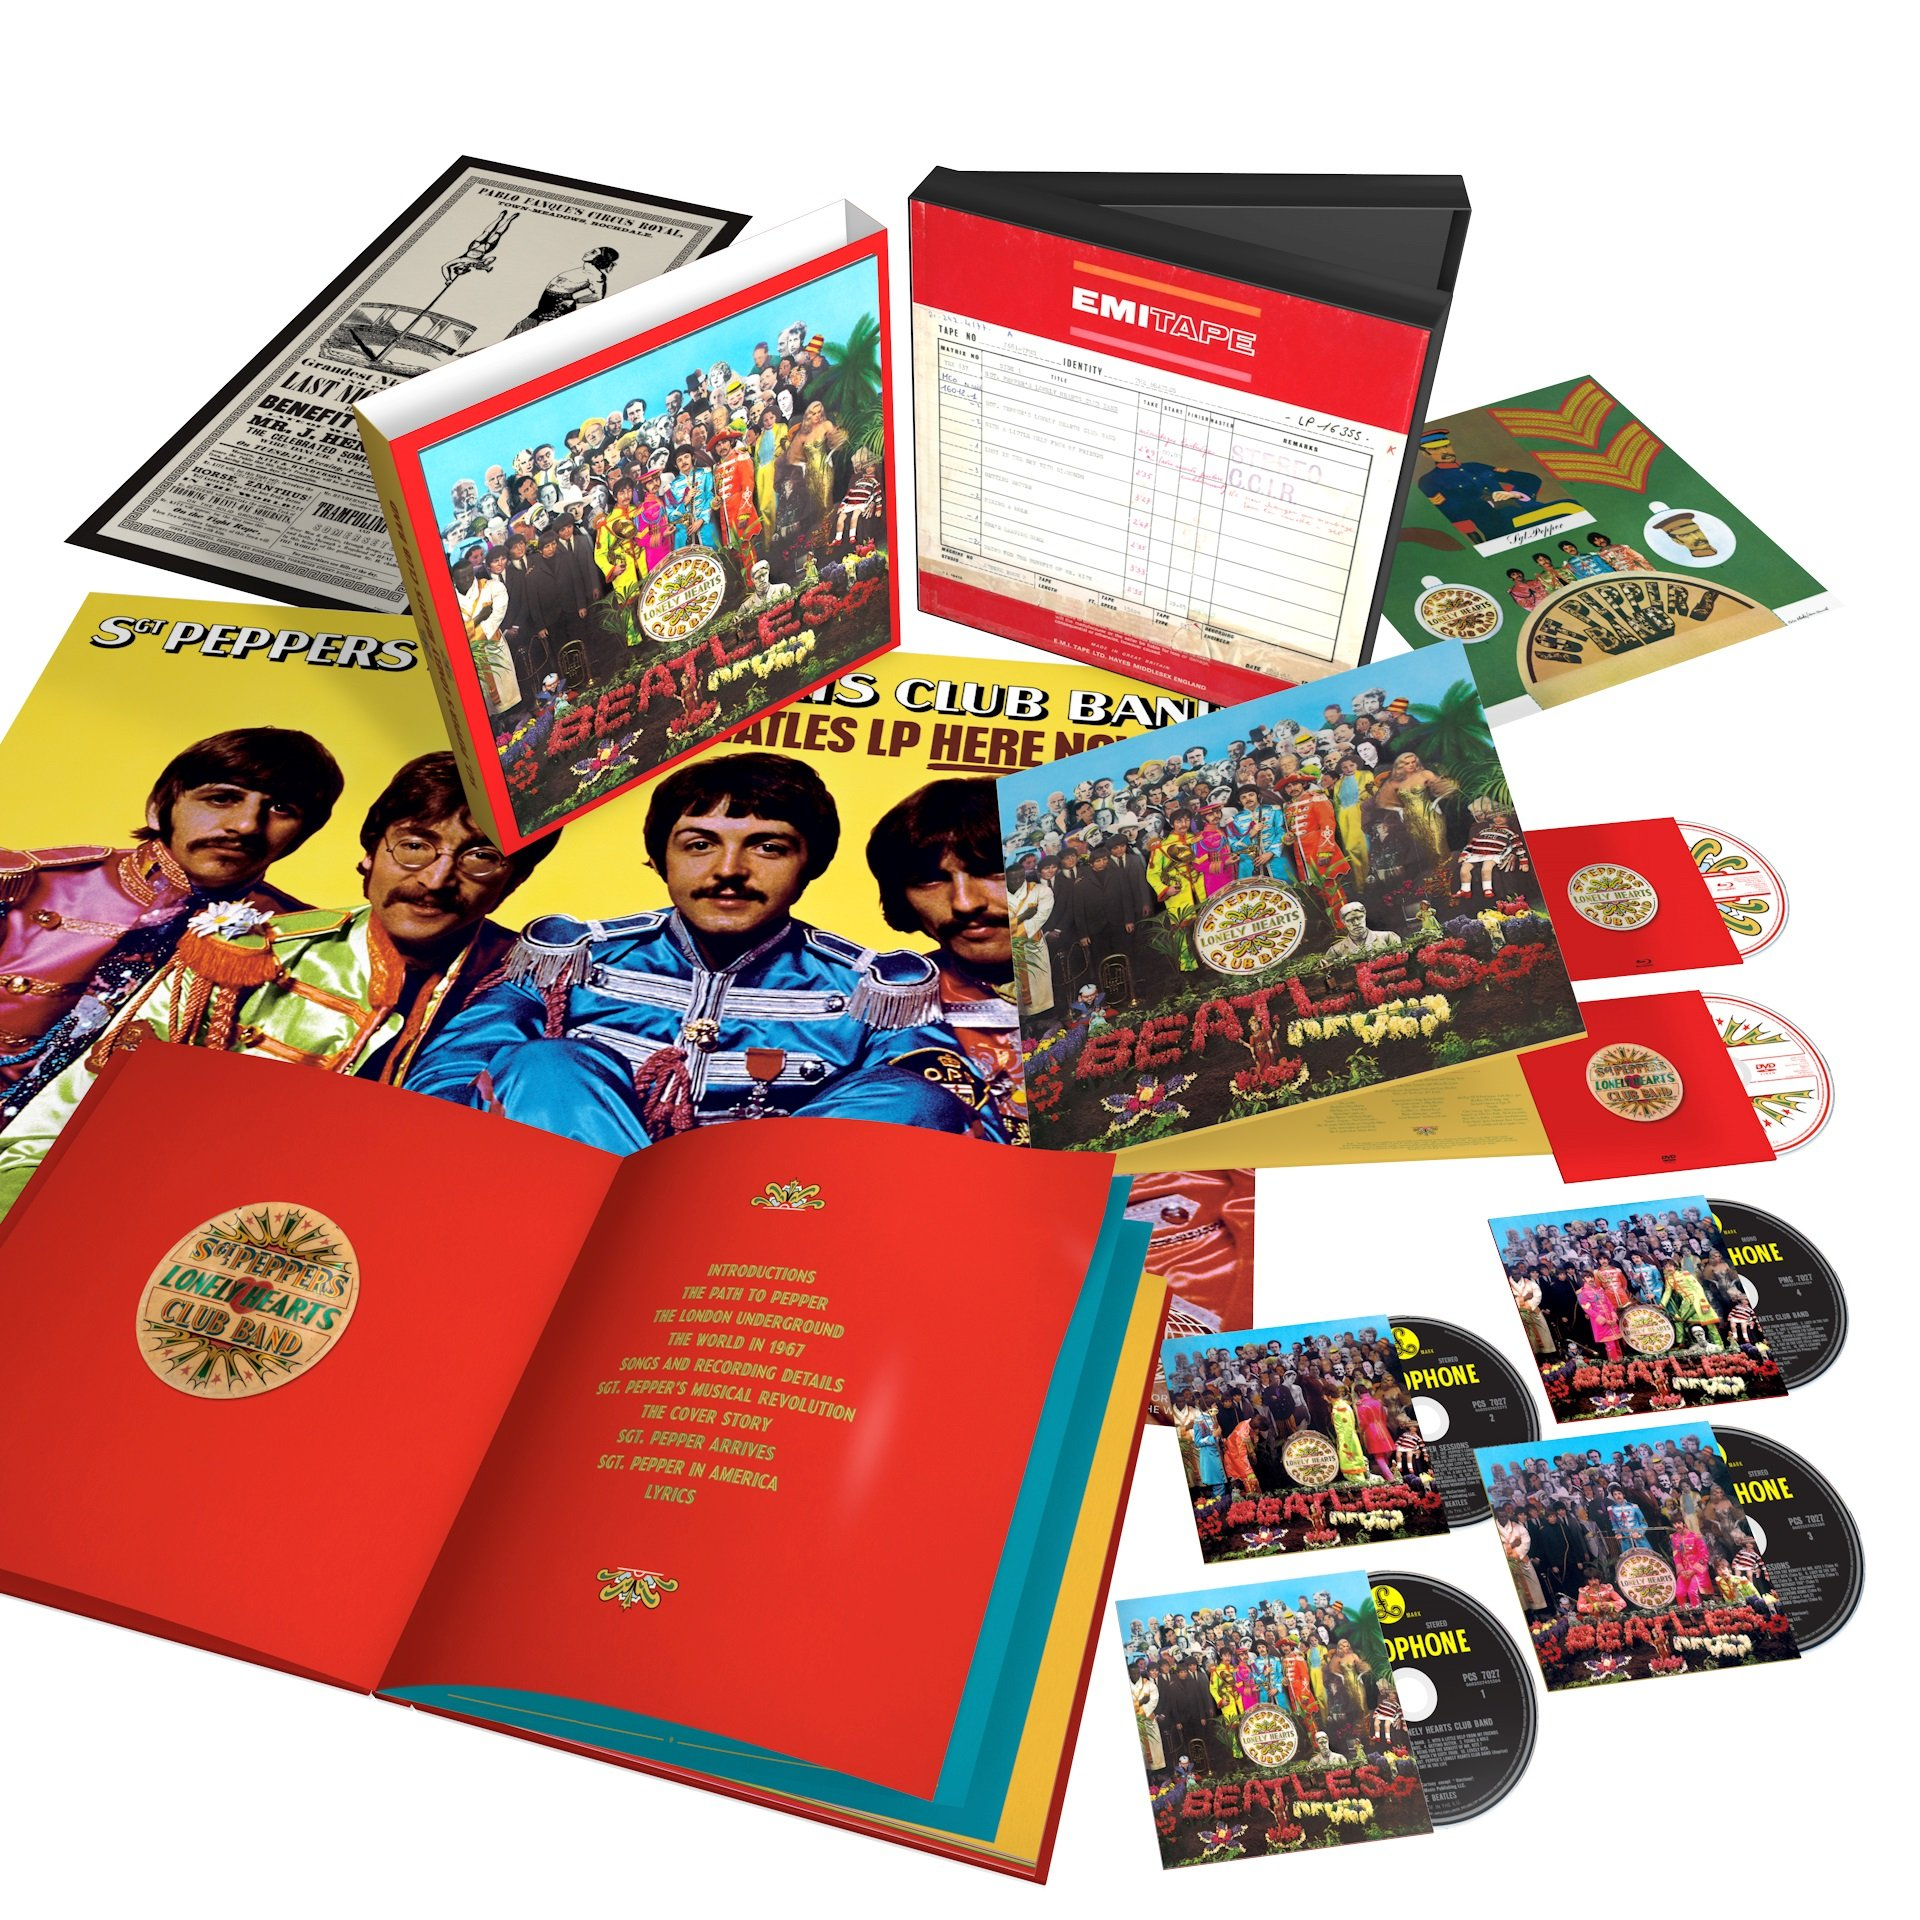 Sgt. Pepper's Lonely Hearts Club Band [4 CD/DVD/Blu-ray Combo][Super Deluxe Ed by Capitol